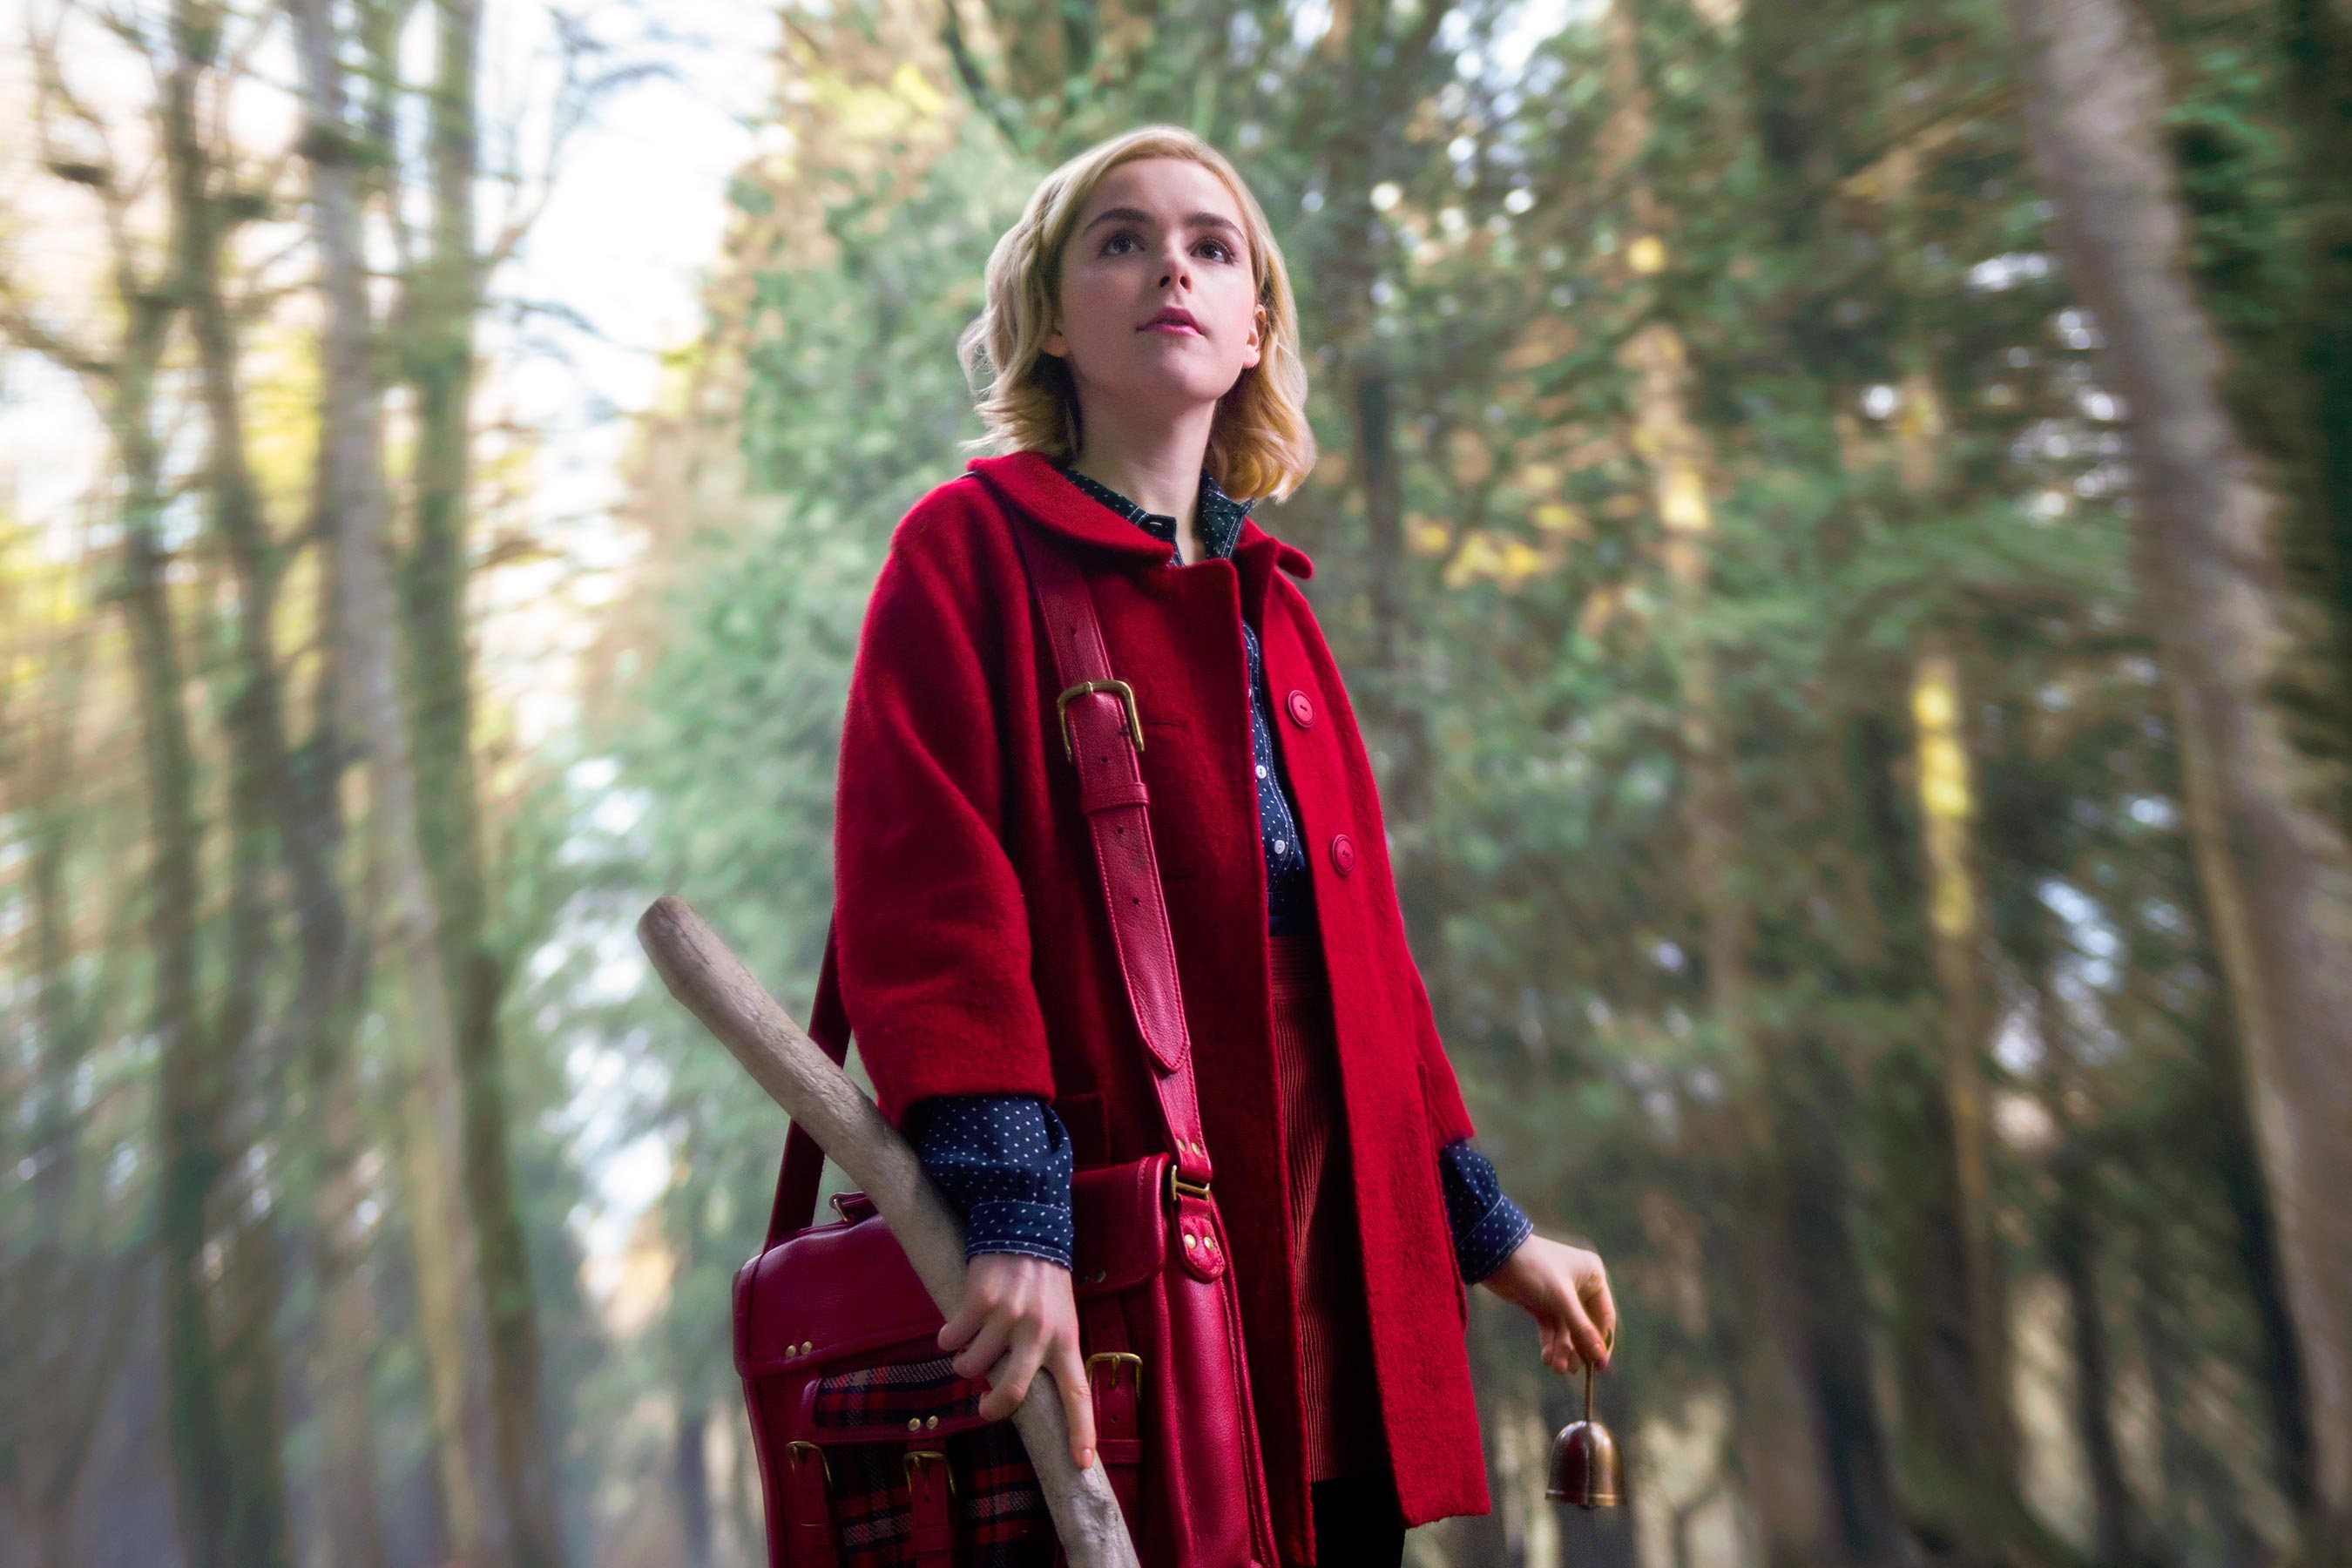 Chilling Adventures of Sabrina First-Look Photos Released By Netflix